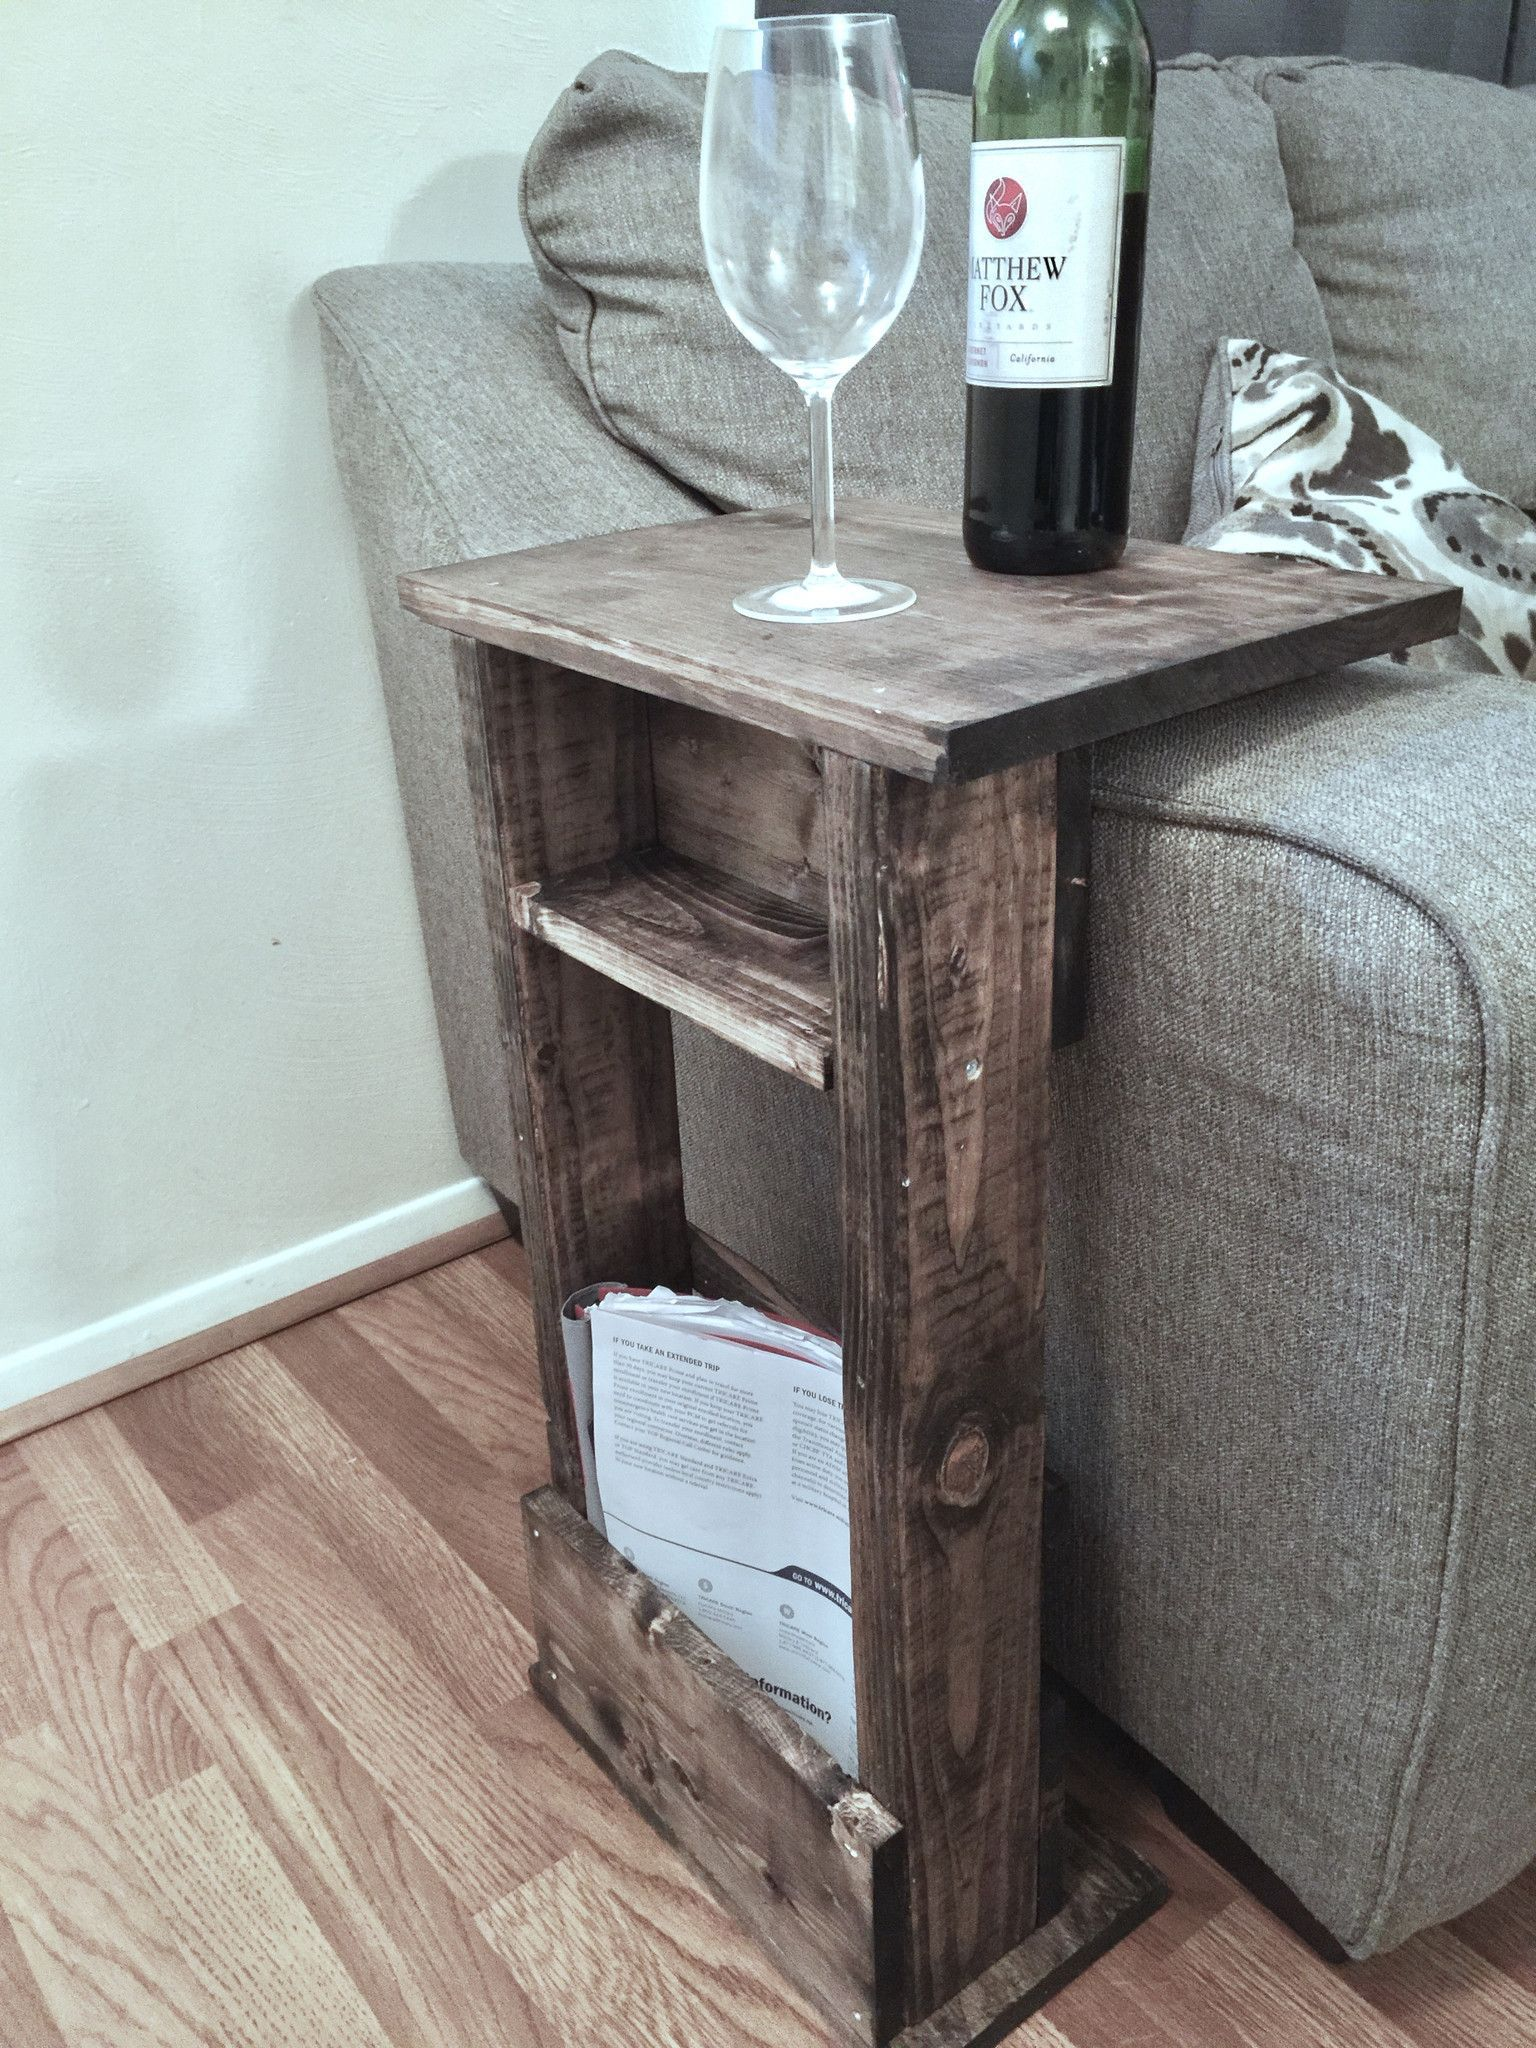 Handcrafted Tray Table Stand With Storage Pocket It Has Been Sanded Down,  Then Stained And Sealed With A Dark Walnut Finish Wood Sofa Arm Table  Provide A ...